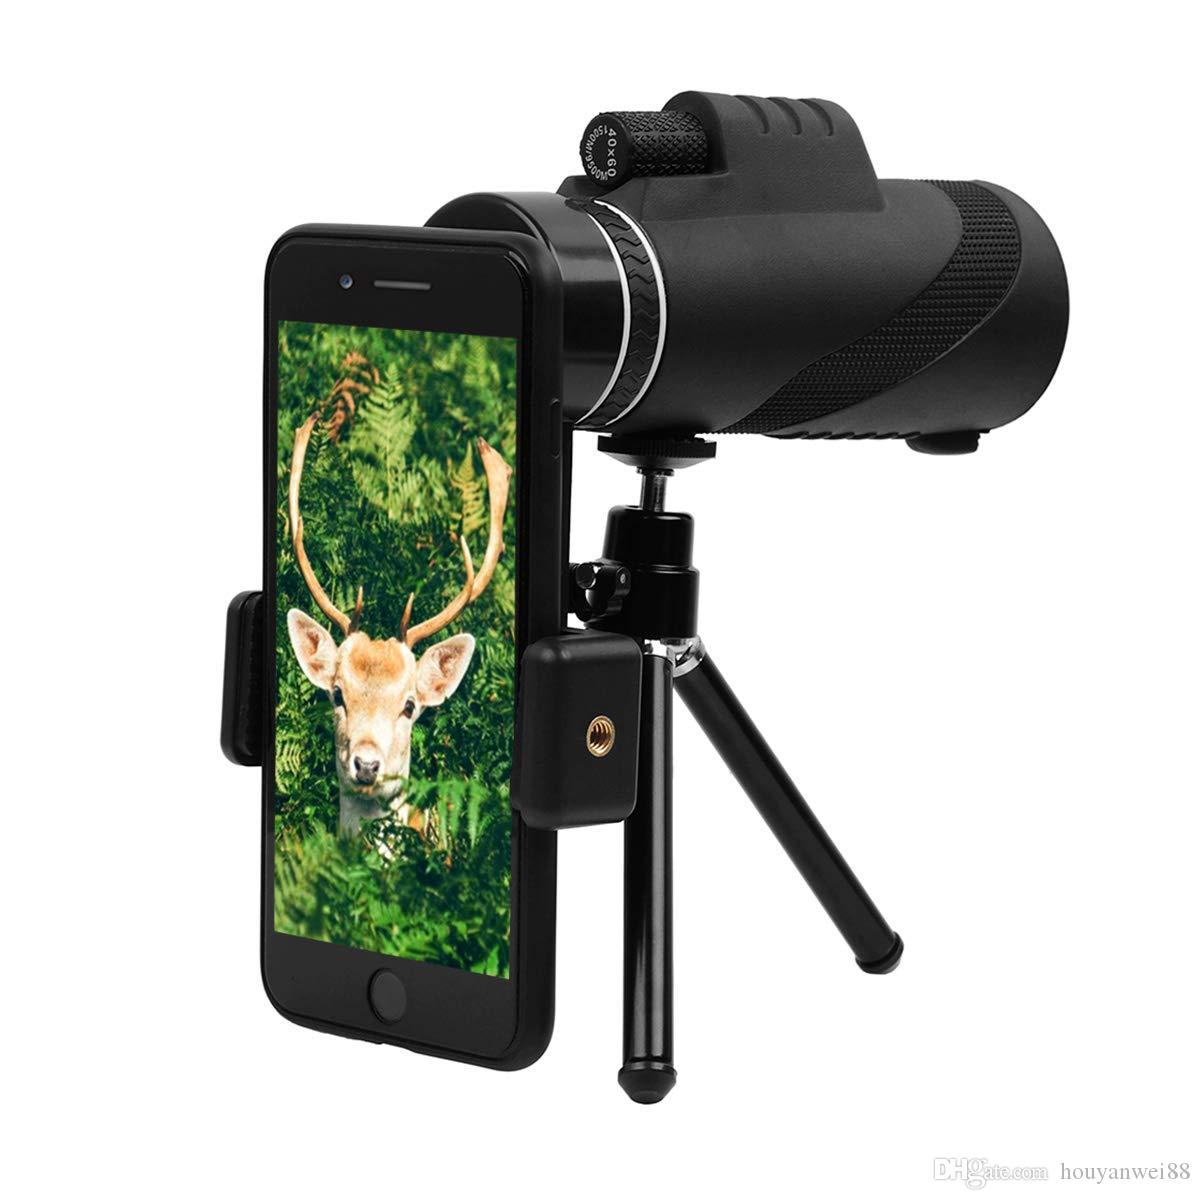 Binoculars & Telescopes Binocular Cases & Accessories 40x60 Prism Spotting Scope Waterproof Telescope W/ Tripod Phone Adapter Bag Sale Price